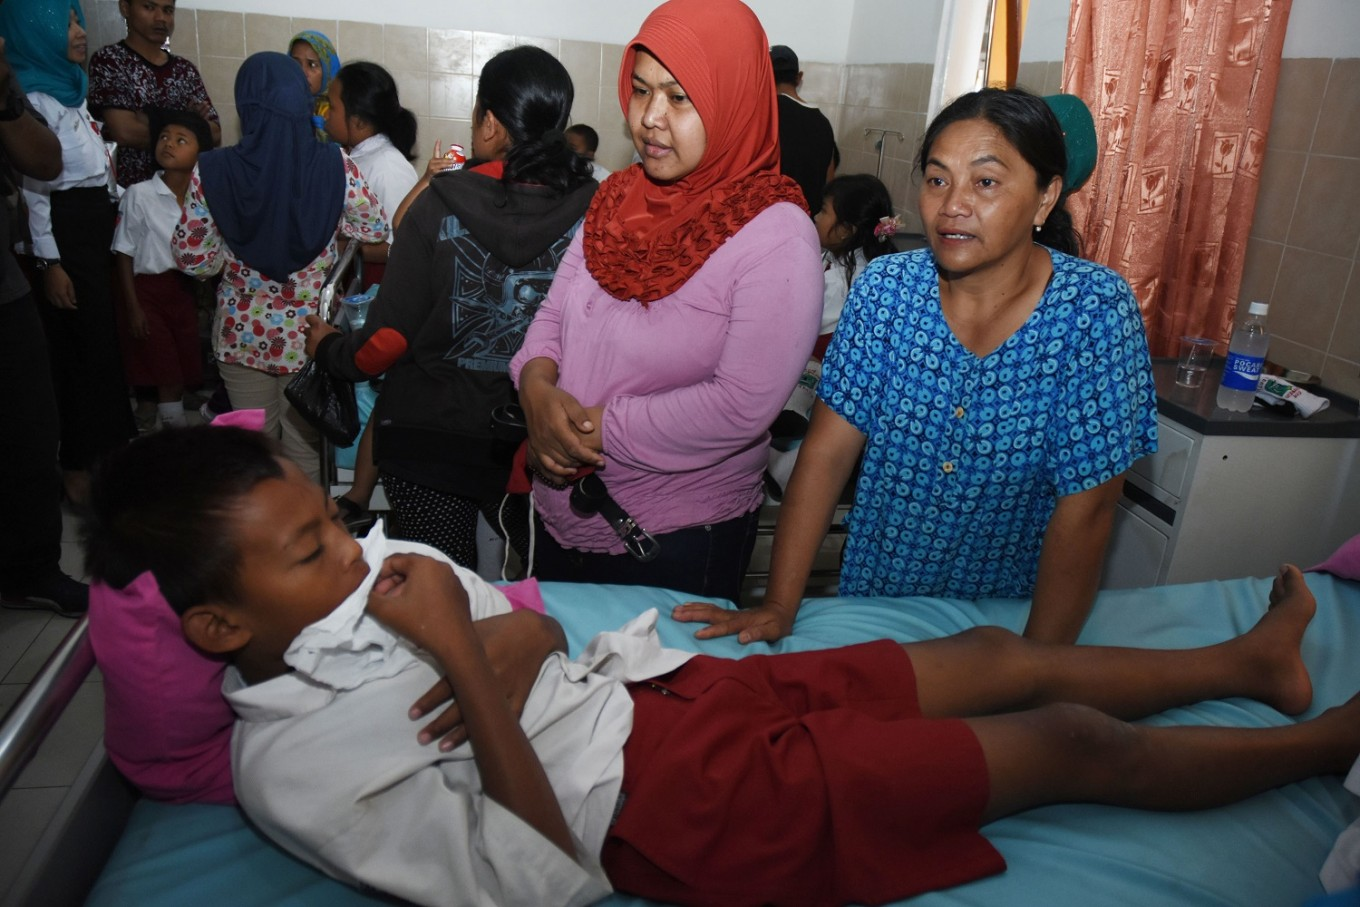 School students admitted to clinic with food poisoning